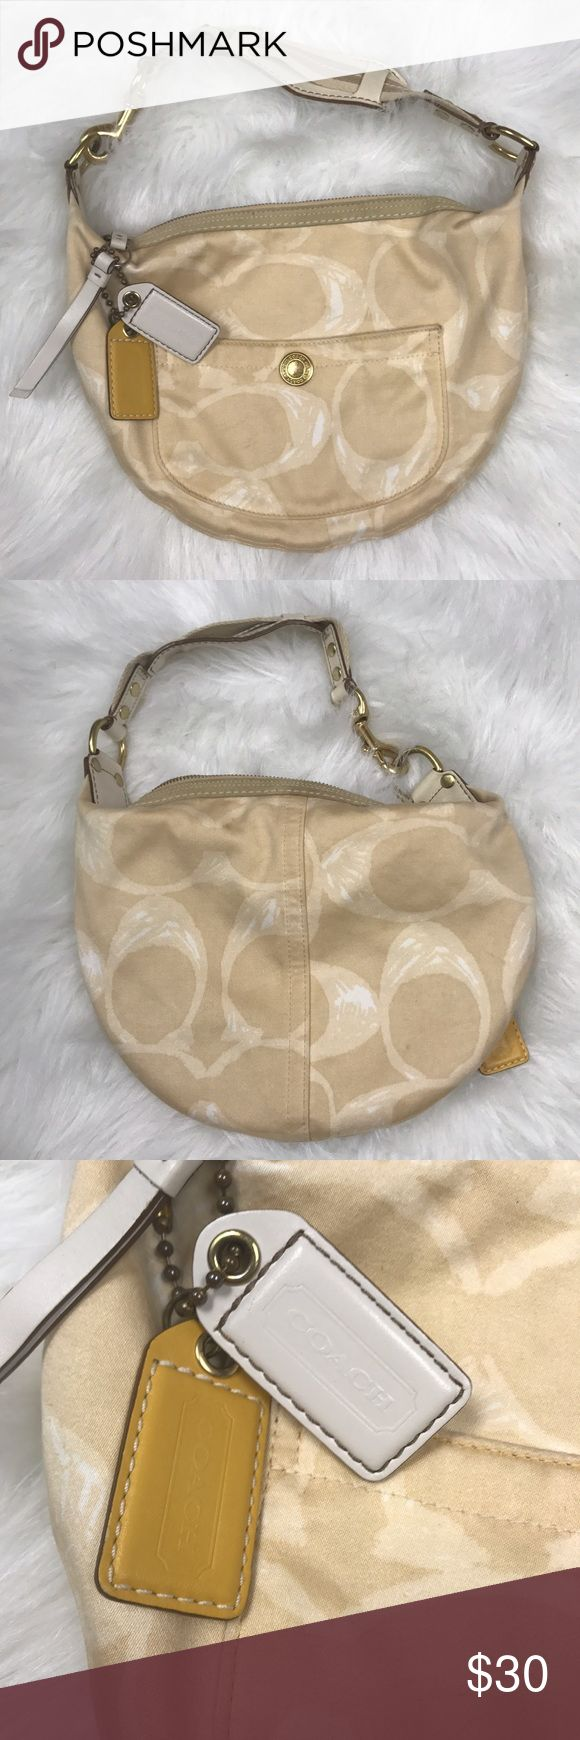 COACH BEIGE SCRIBBLE C SMALL HOBO SHOULDER BAG Good condition coach beige scribble purse. So cute! Needs a good cleaning but overall good condition Coach Bags Shoulder Bags